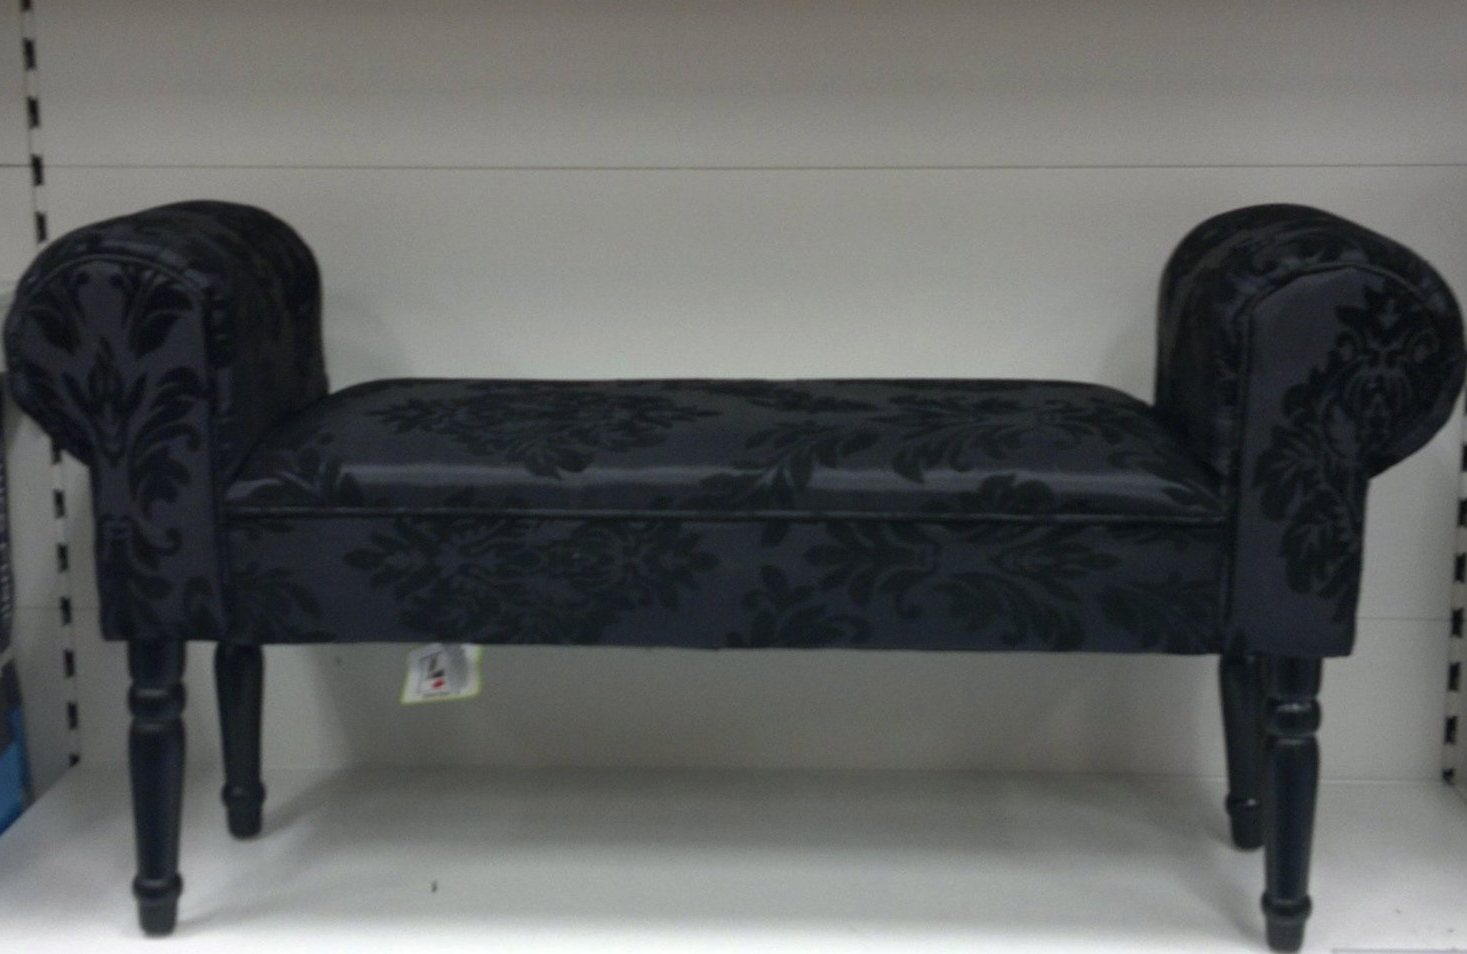 Latest Damask Chaise Lounge Chairs Pertaining To Black Damask Chaise Longue: Amazon.co (View 12 of 15)